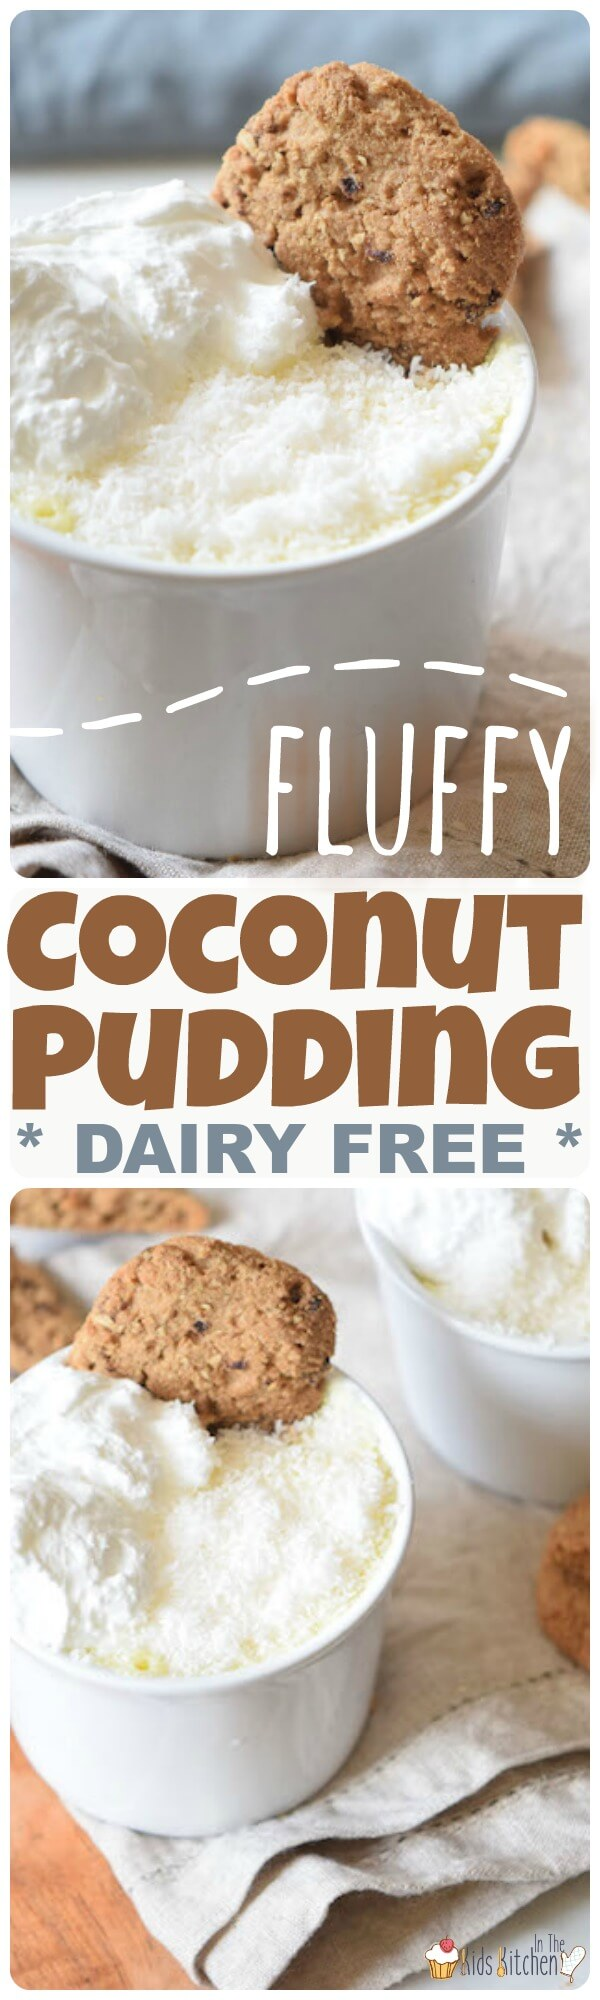 Made with simple ingredients, this Dairy Free Coconut Pudding is a deliciously fluffy and healthy alternative to dairy desserts!